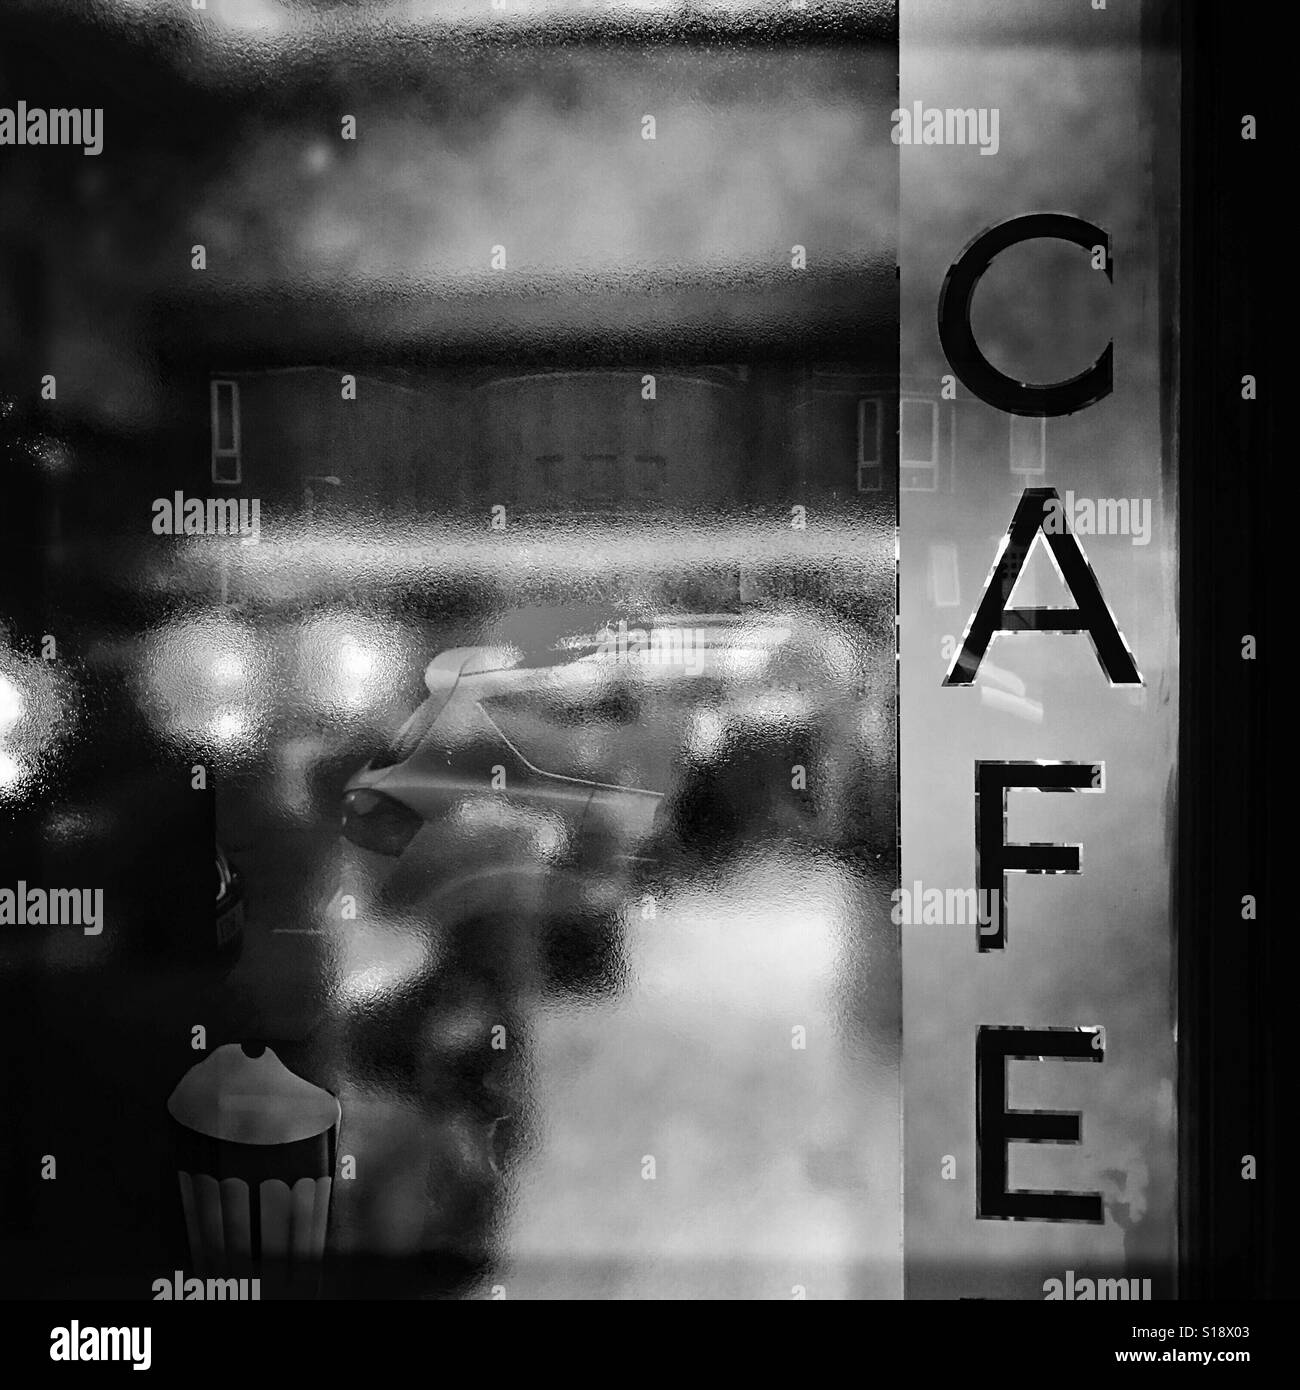 Logo on the glass door of a traditional Glasgow Cafe. - Stock Image